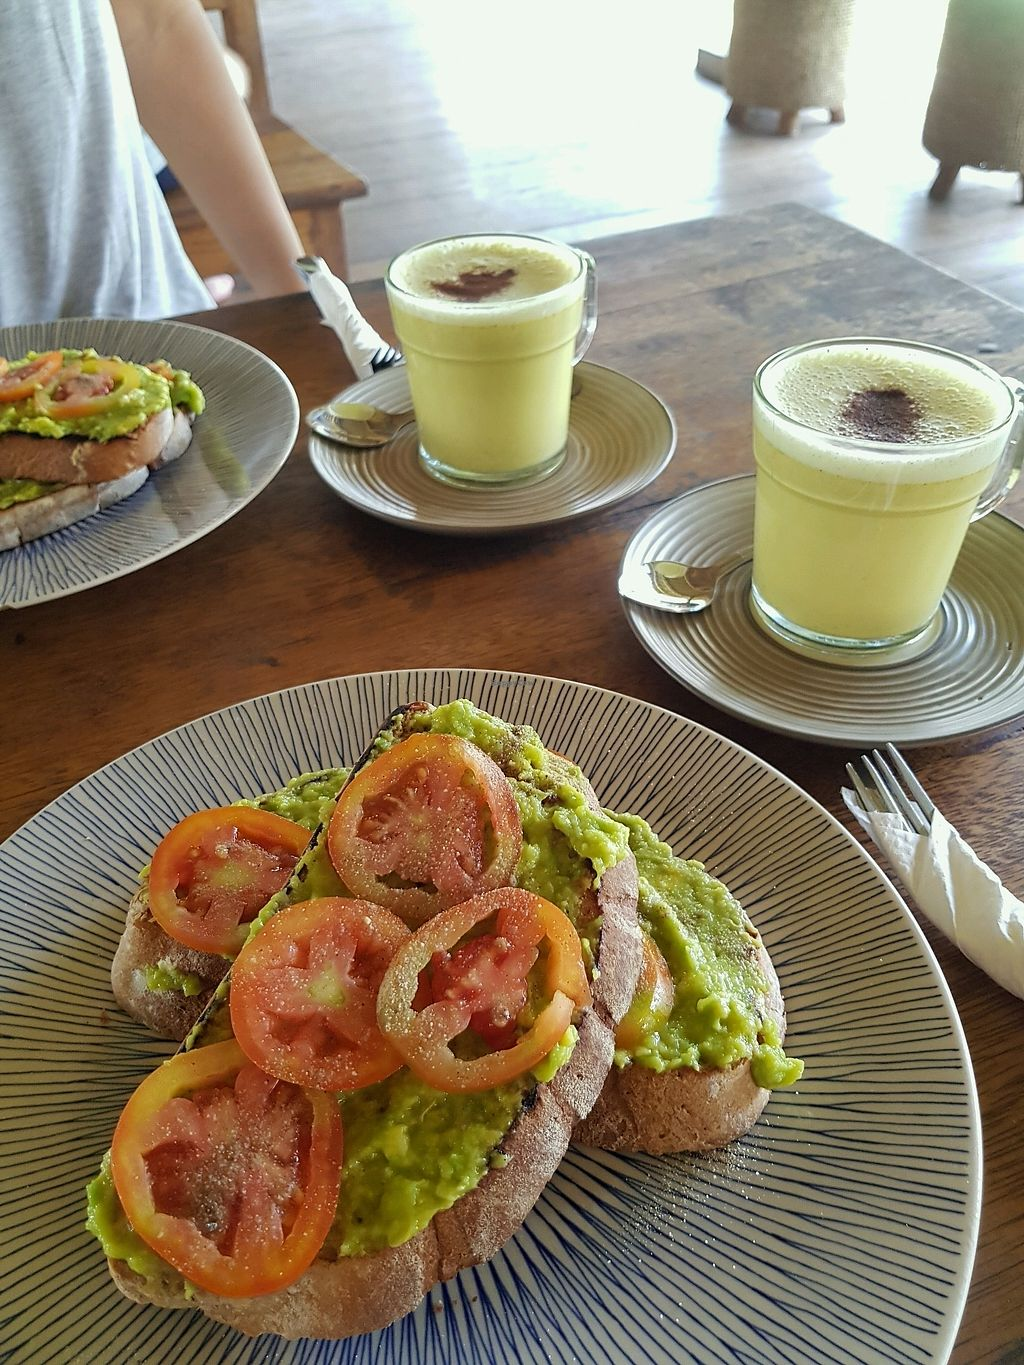 """Photo of Captain Coconuts  by <a href=""""/members/profile/zuckerzucker"""">zuckerzucker</a> <br/>avo toast and golden latte <br/> March 23, 2018  - <a href='/contact/abuse/image/98431/374682'>Report</a>"""